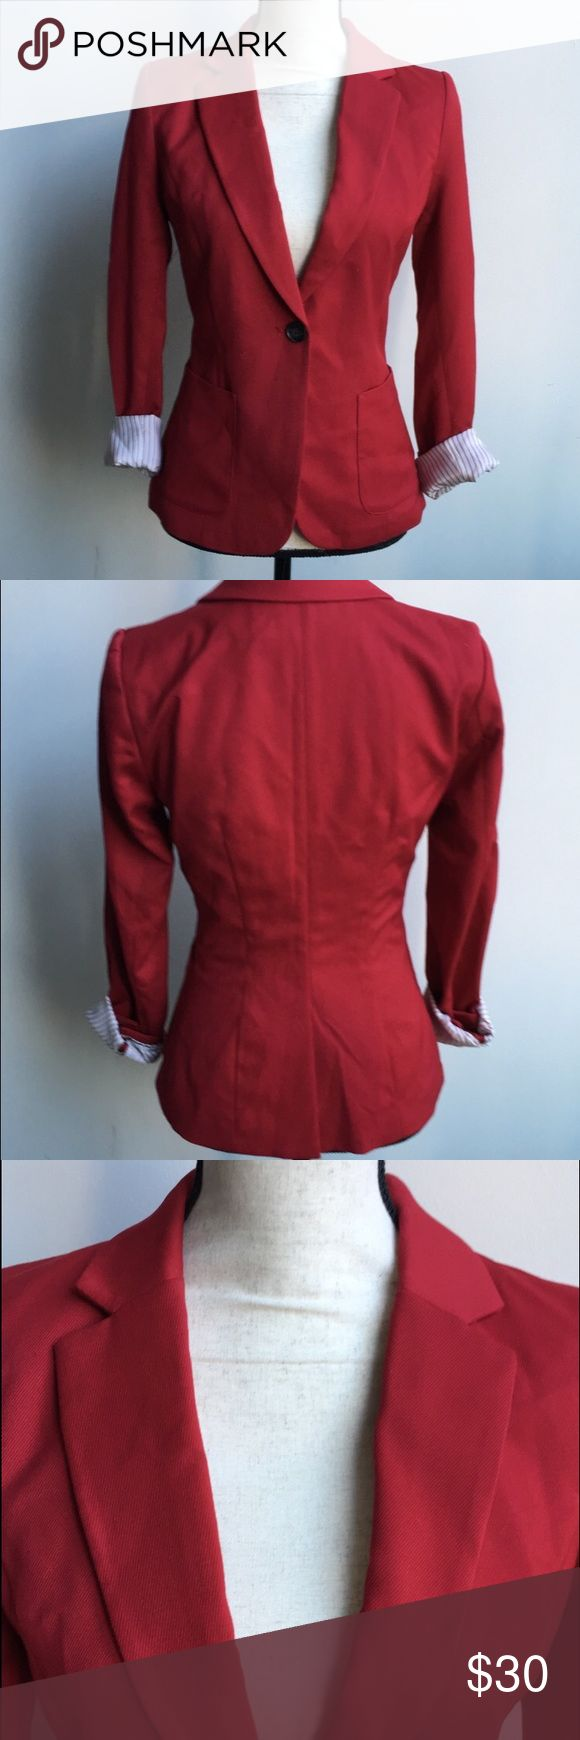 Red Blazer Red Blazer With White & Red Pinstripe Lining. Very Cute For The Holidays! Pair it with slacks for the office or dress up some jeans with this cute Blazer. Only worn once, like new. Sleeves can be rolled up to show cute lining, or rolled down for a more conservative look. Tops